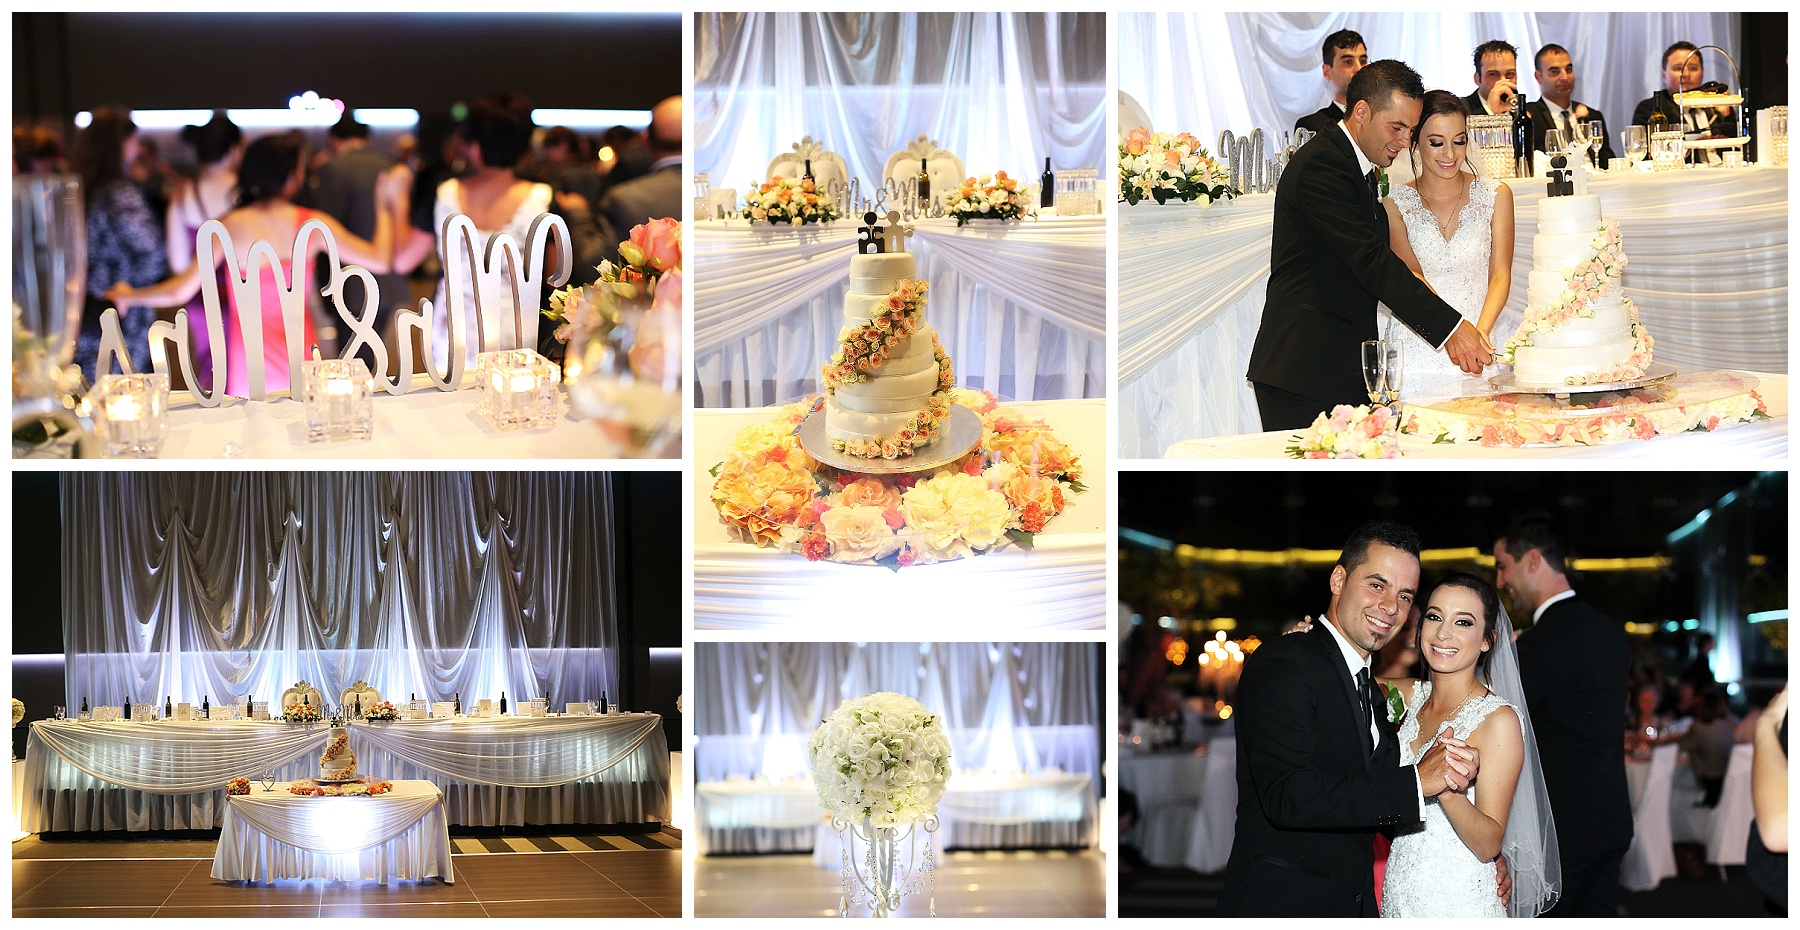 Wedding at Joondalup Resort